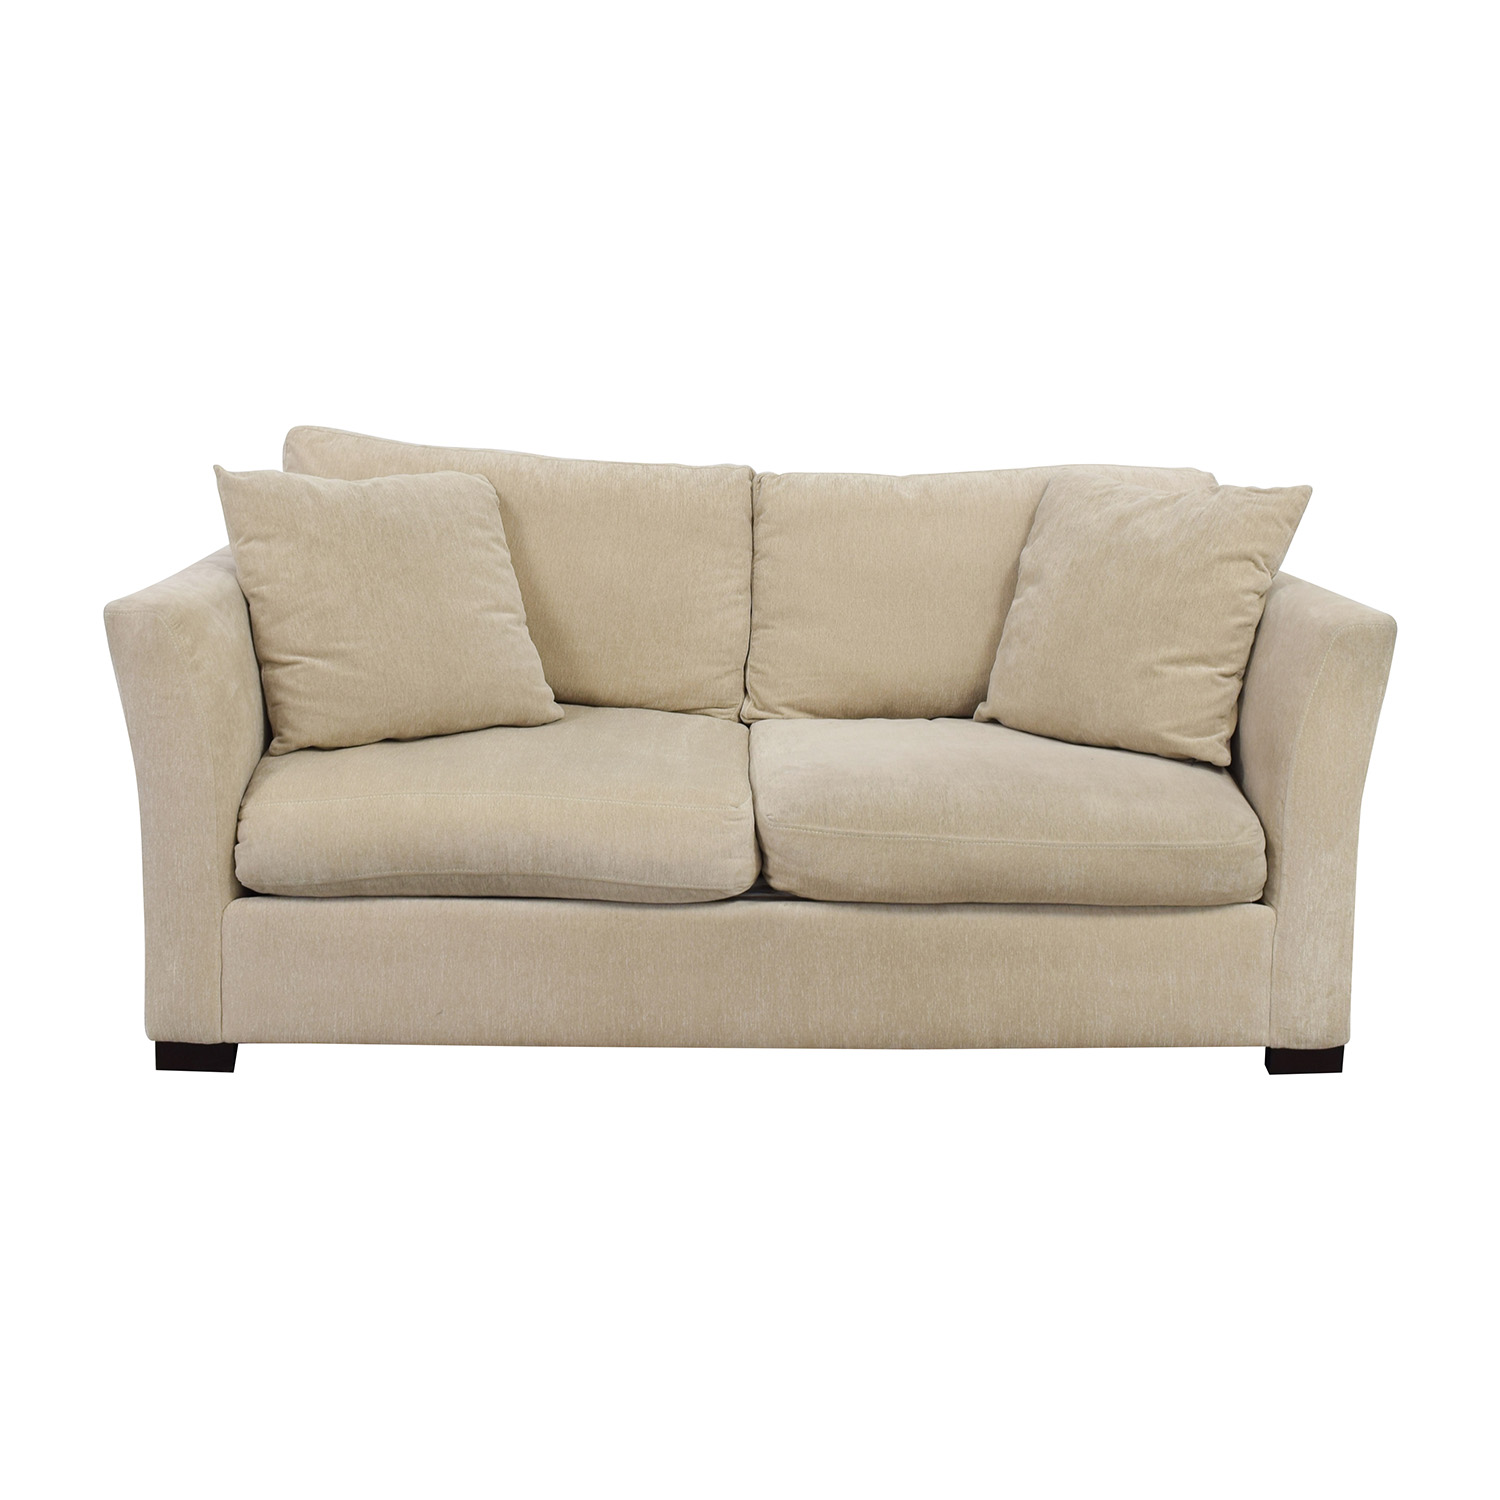 Macys Macys White Two Cushion Fabric Couch discount ...